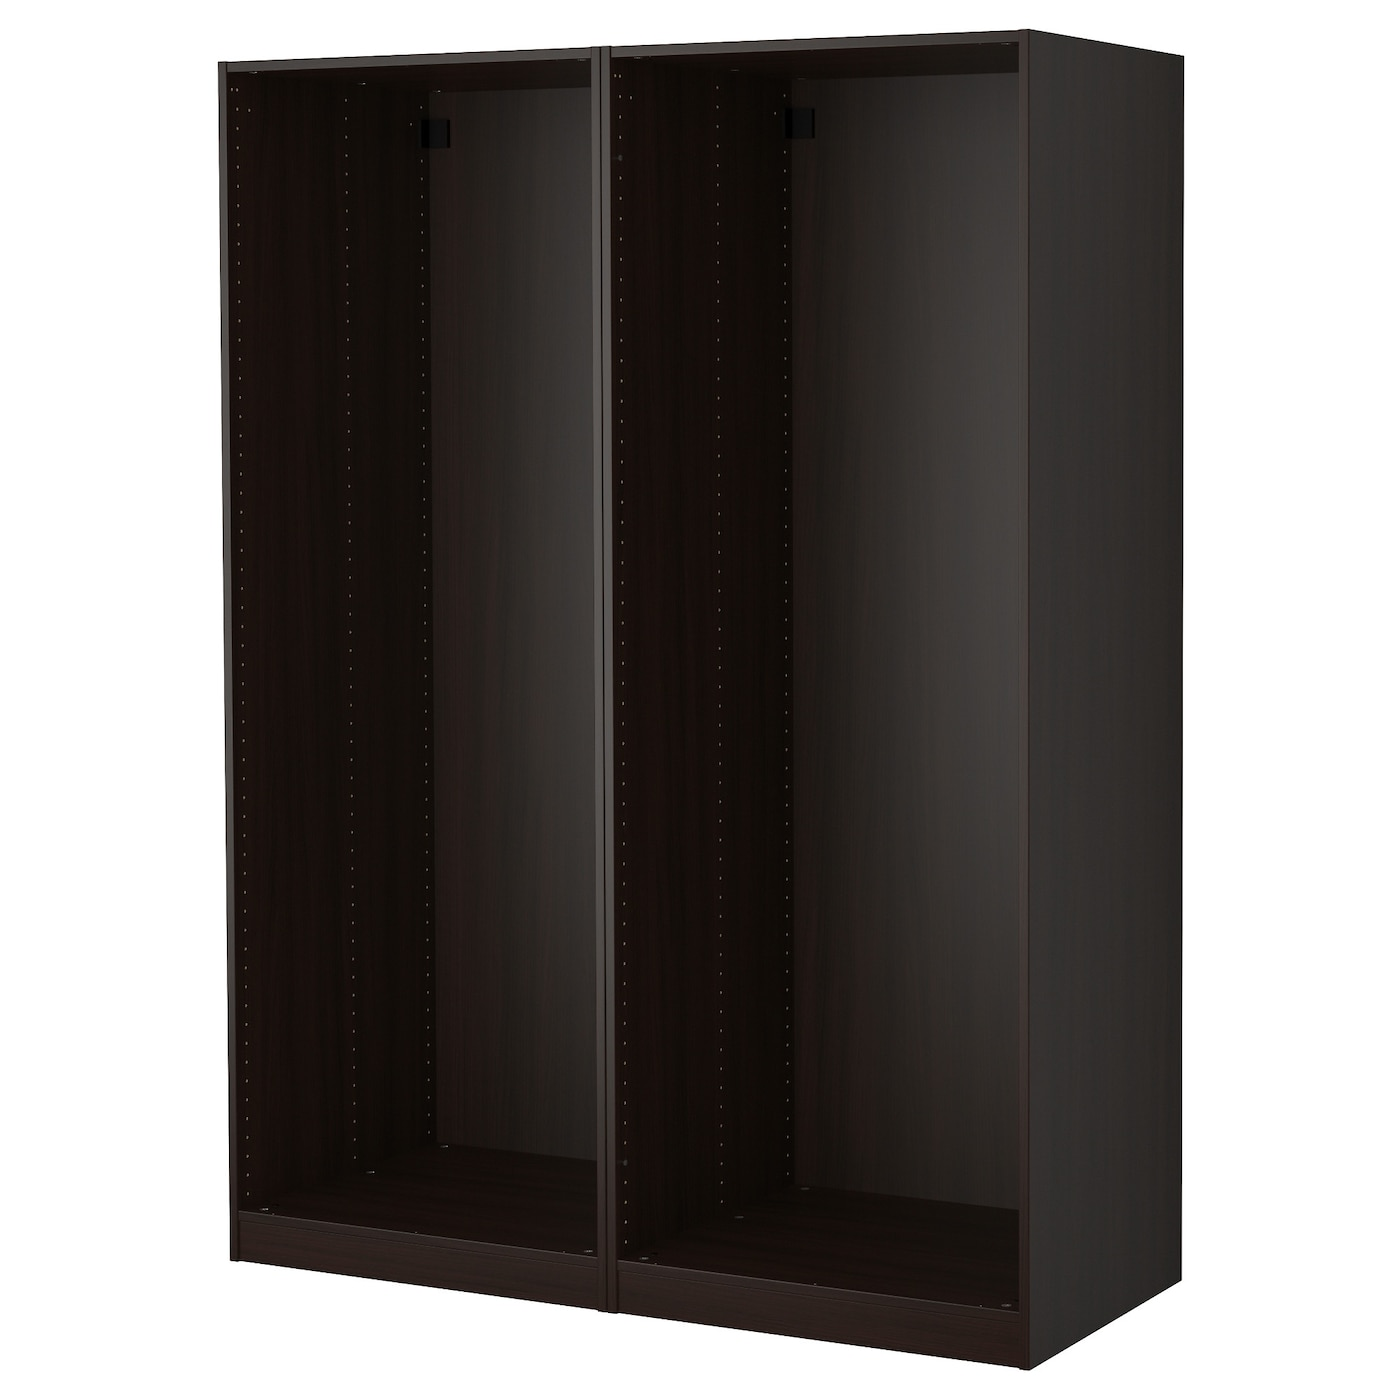 pax caissons pour portes coulissantes ikea. Black Bedroom Furniture Sets. Home Design Ideas